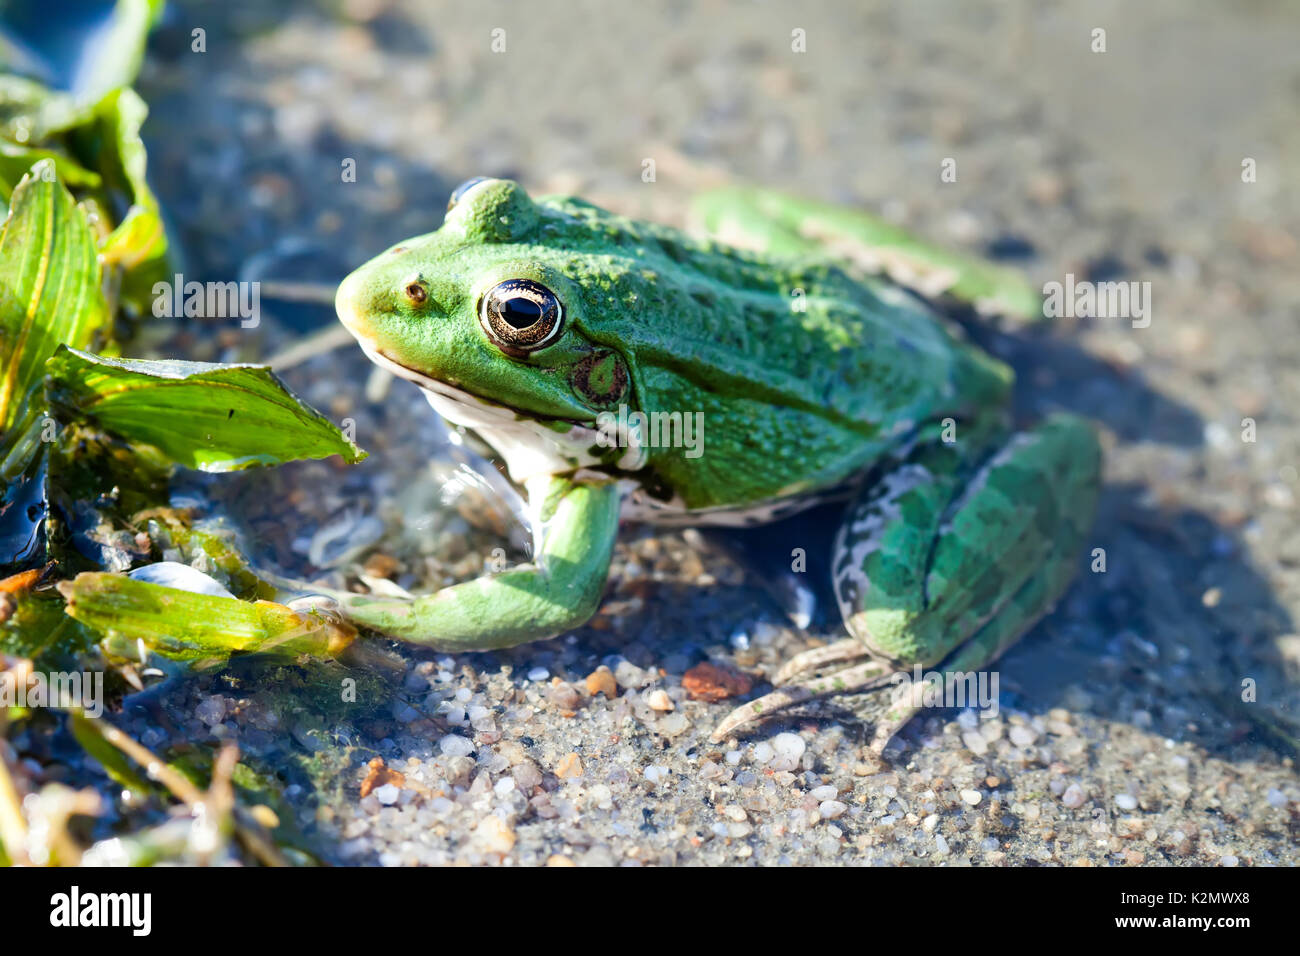 Green marsh frog natural habitat river coast background, camouflage dots amphibian Pelophylax ridibundus. Up view, selective focus, river plants background - Stock Image